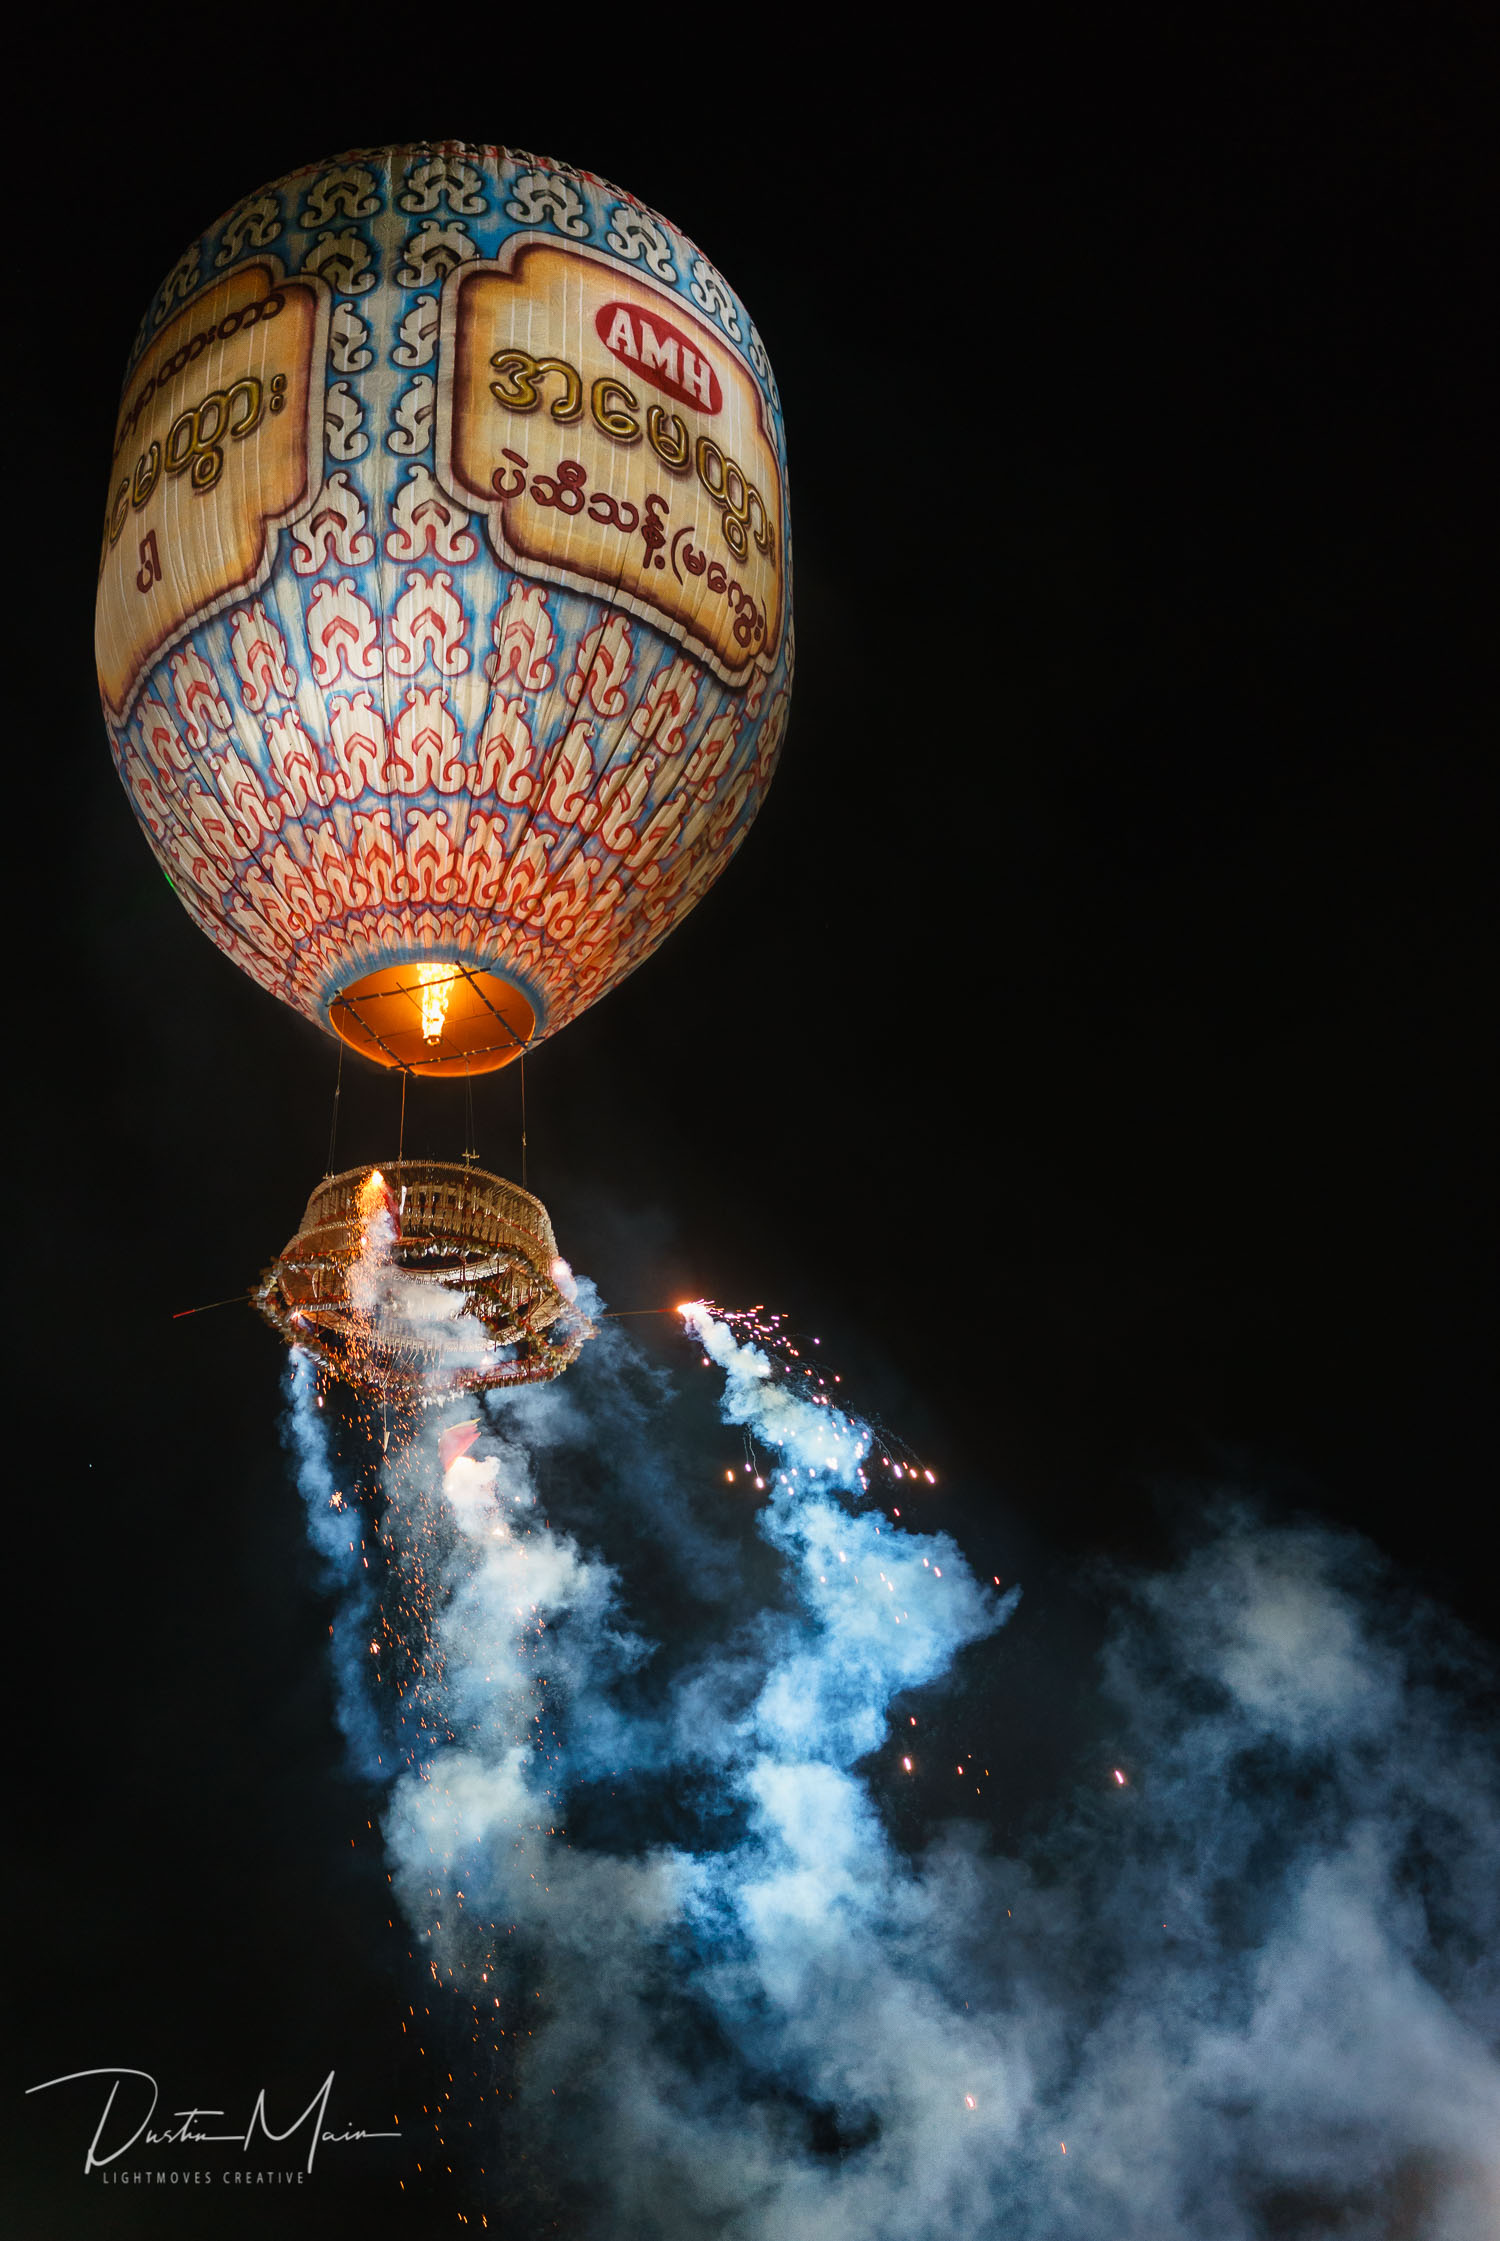 About to blow. Another fire balloon goes up to much fanfare.  © Dustin Main 2015